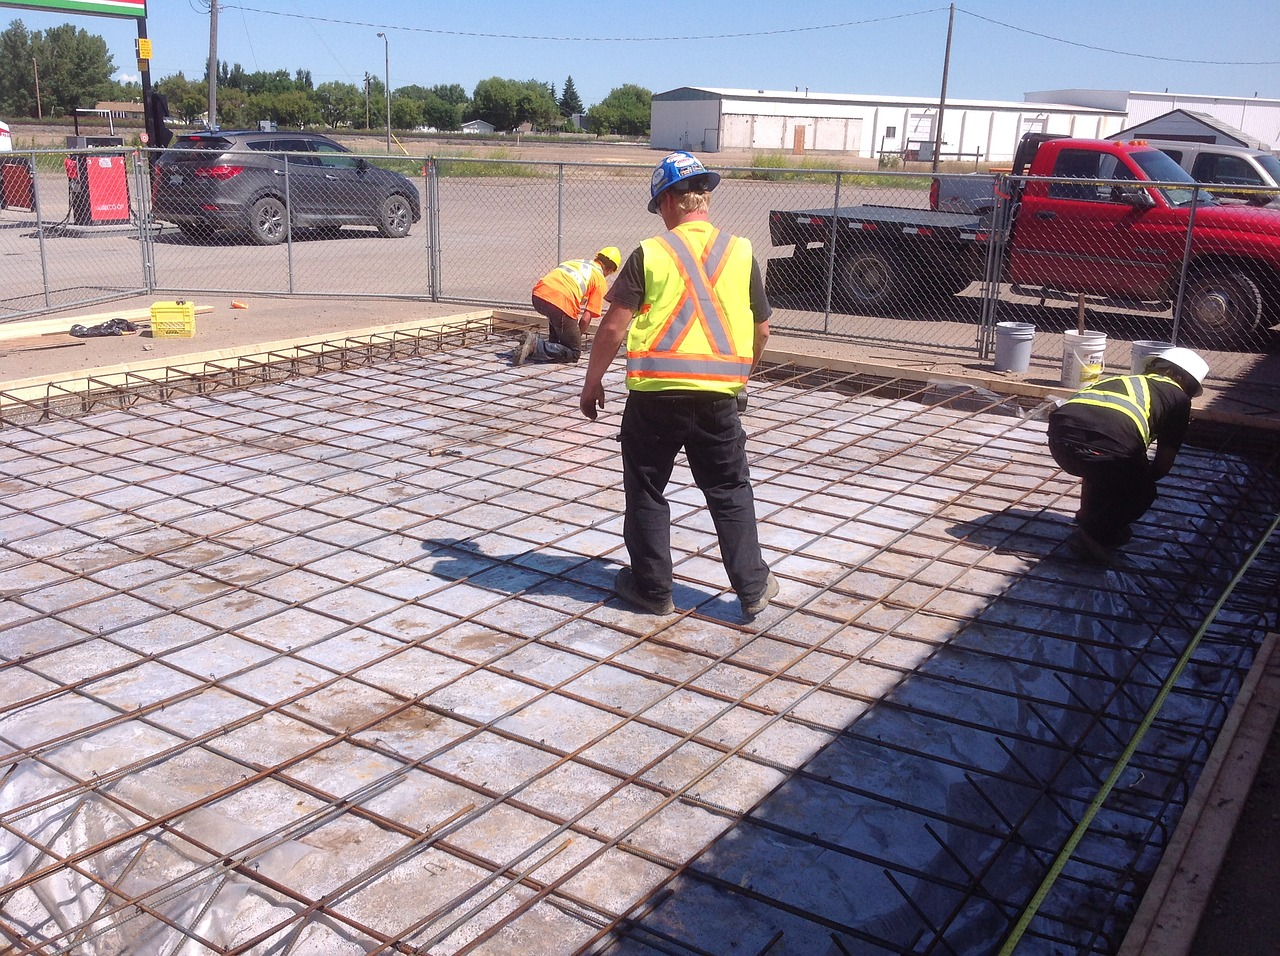 subsurface defects - 5 Common Construction Defects That May Make You Eligible For Compensation